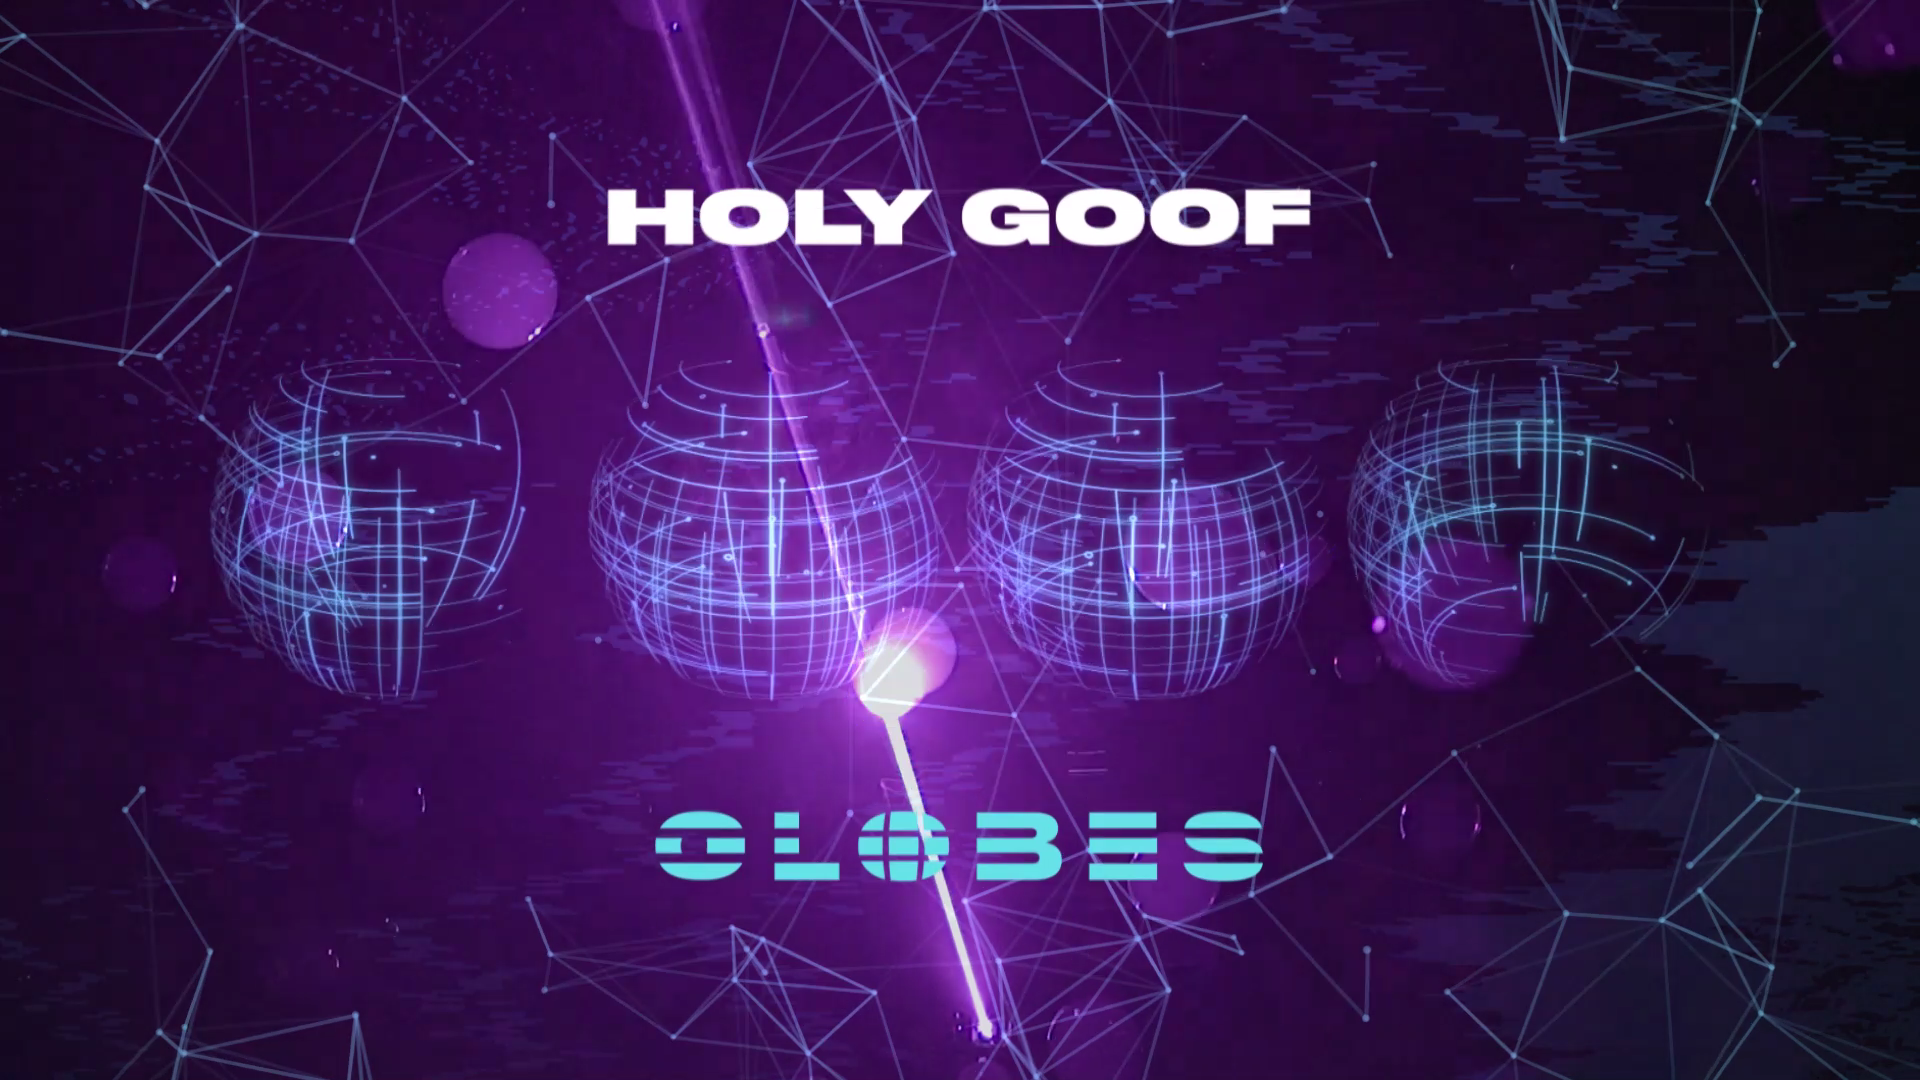 Holy Goof - 'Globes' Album